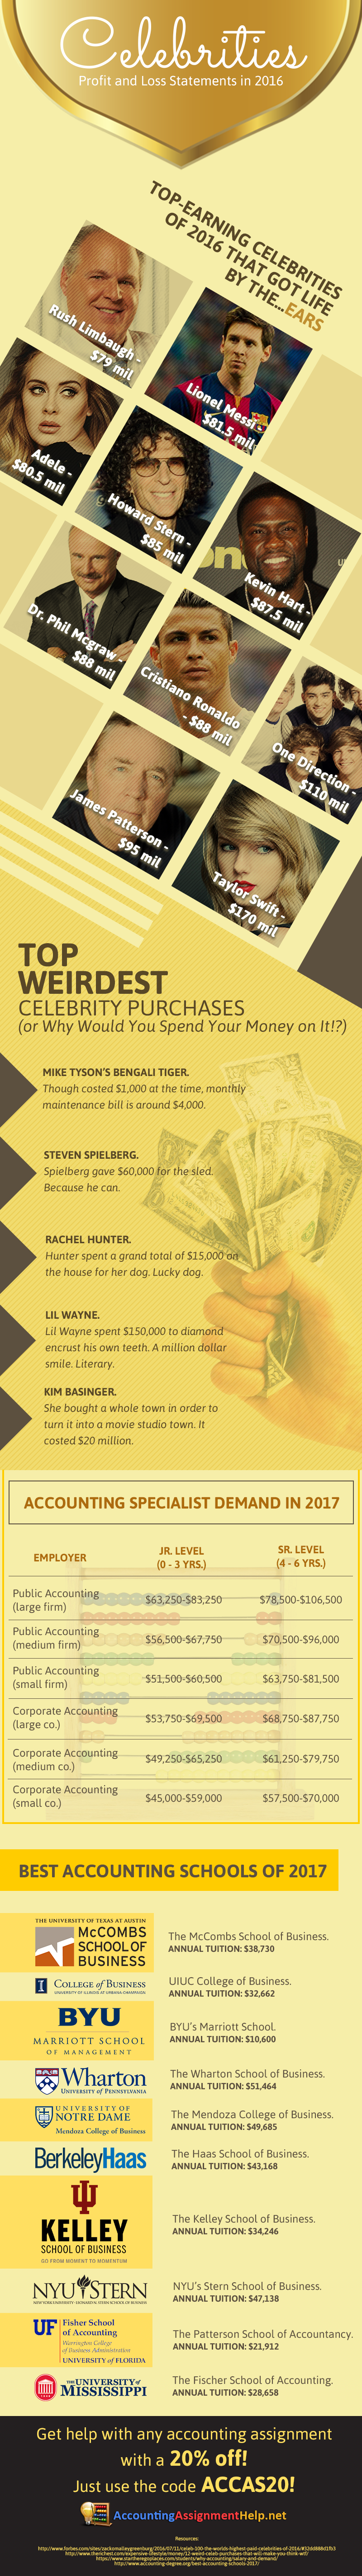 biggest celebrities earnings